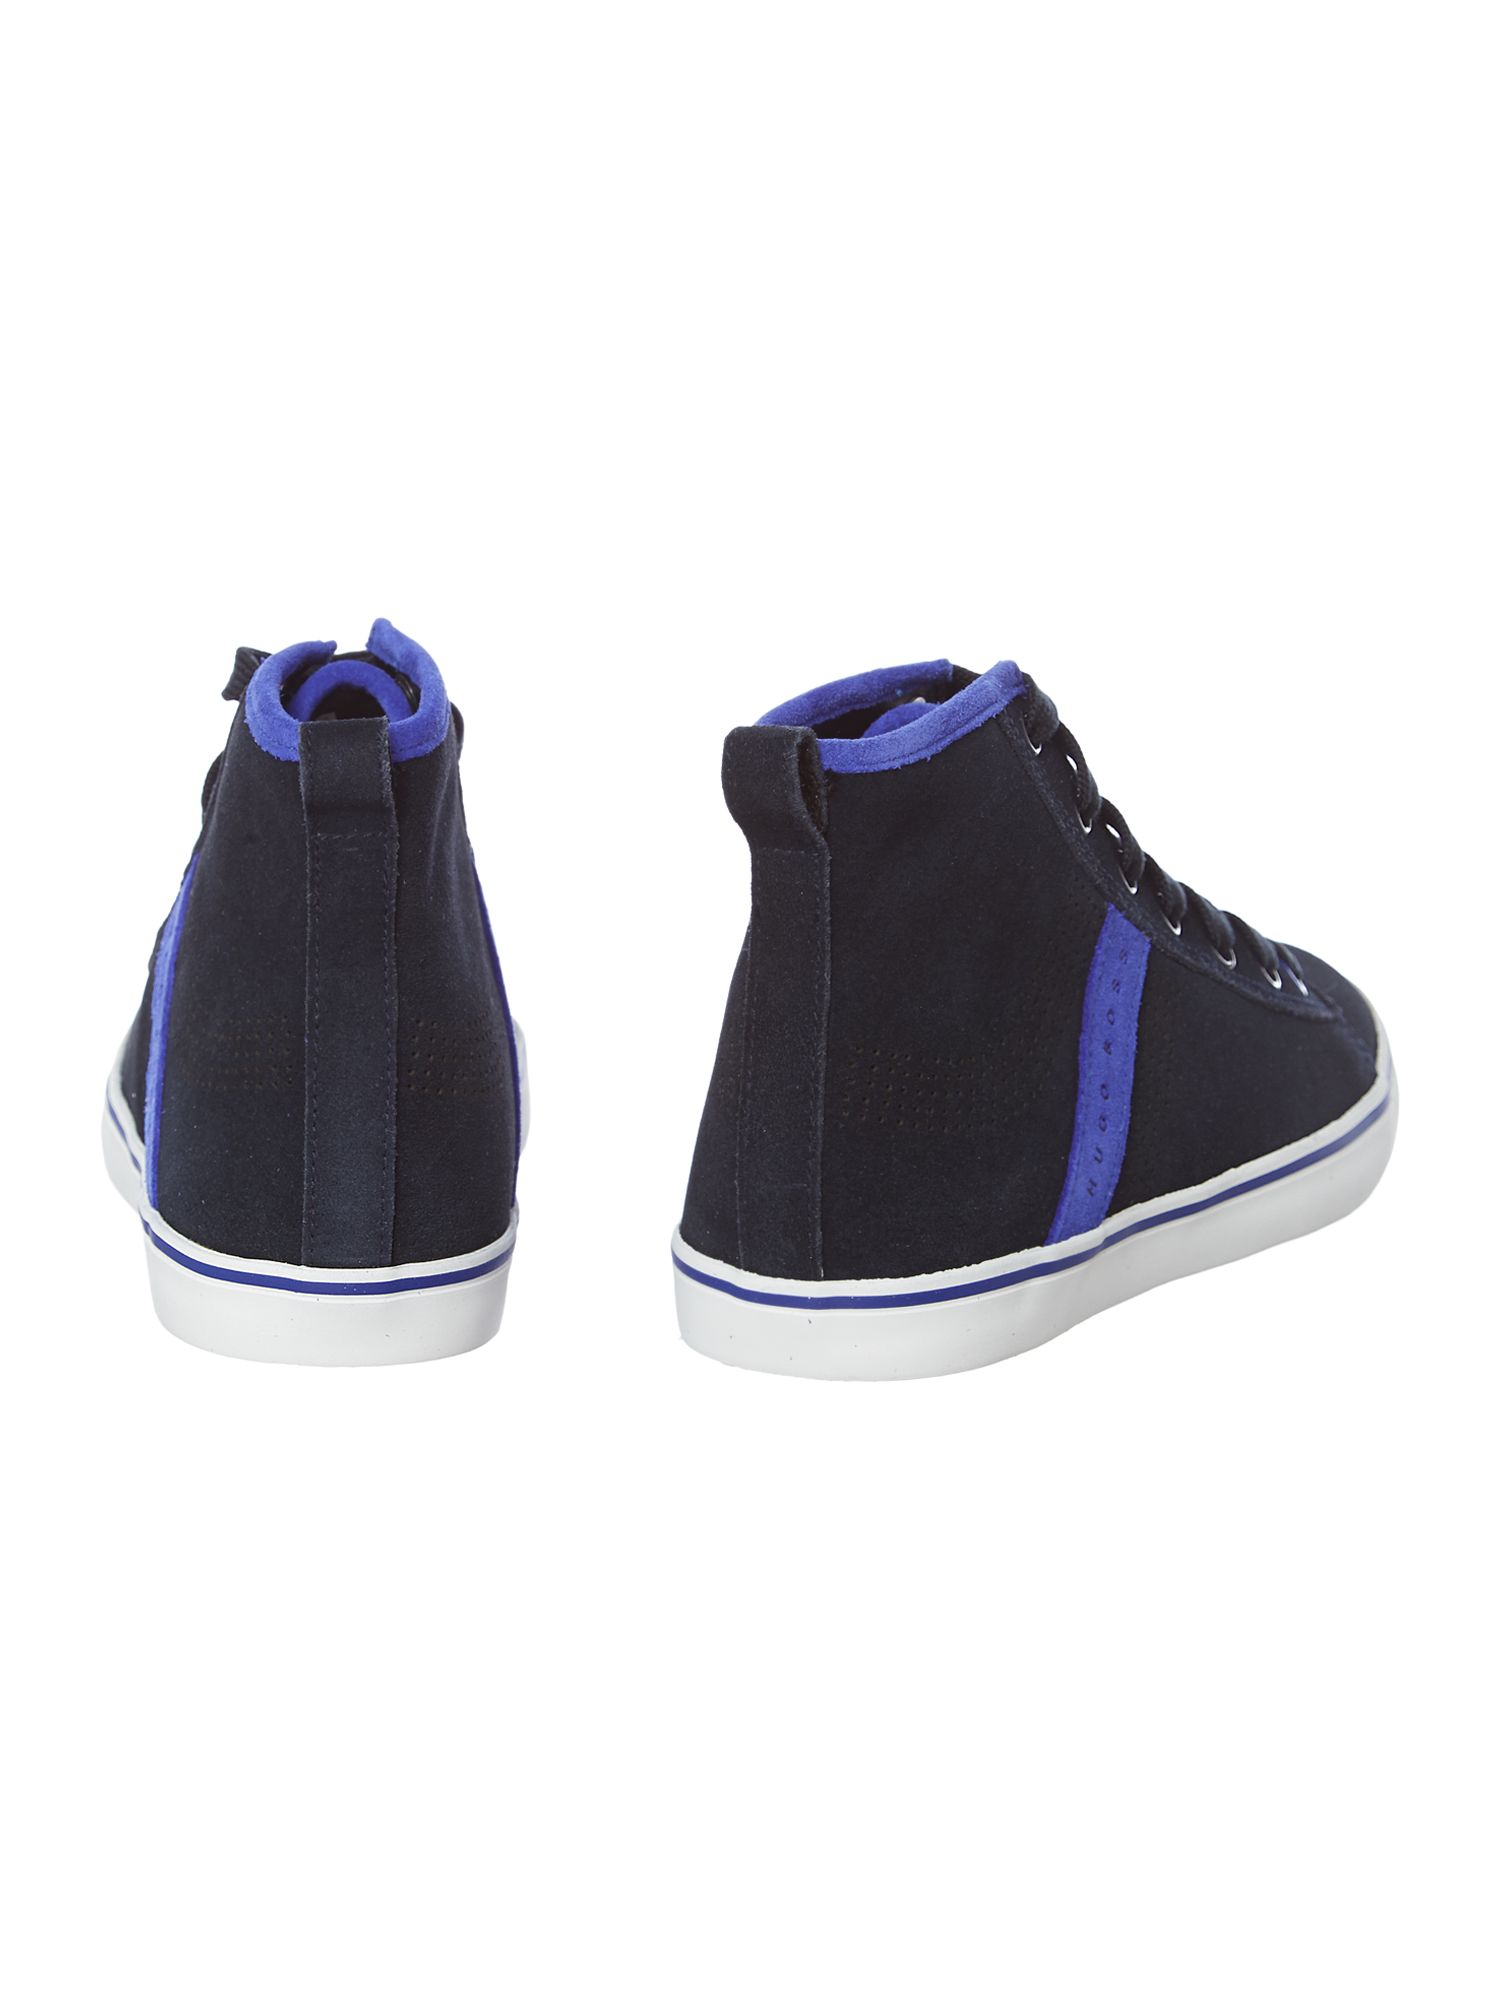 Boys leather trainers